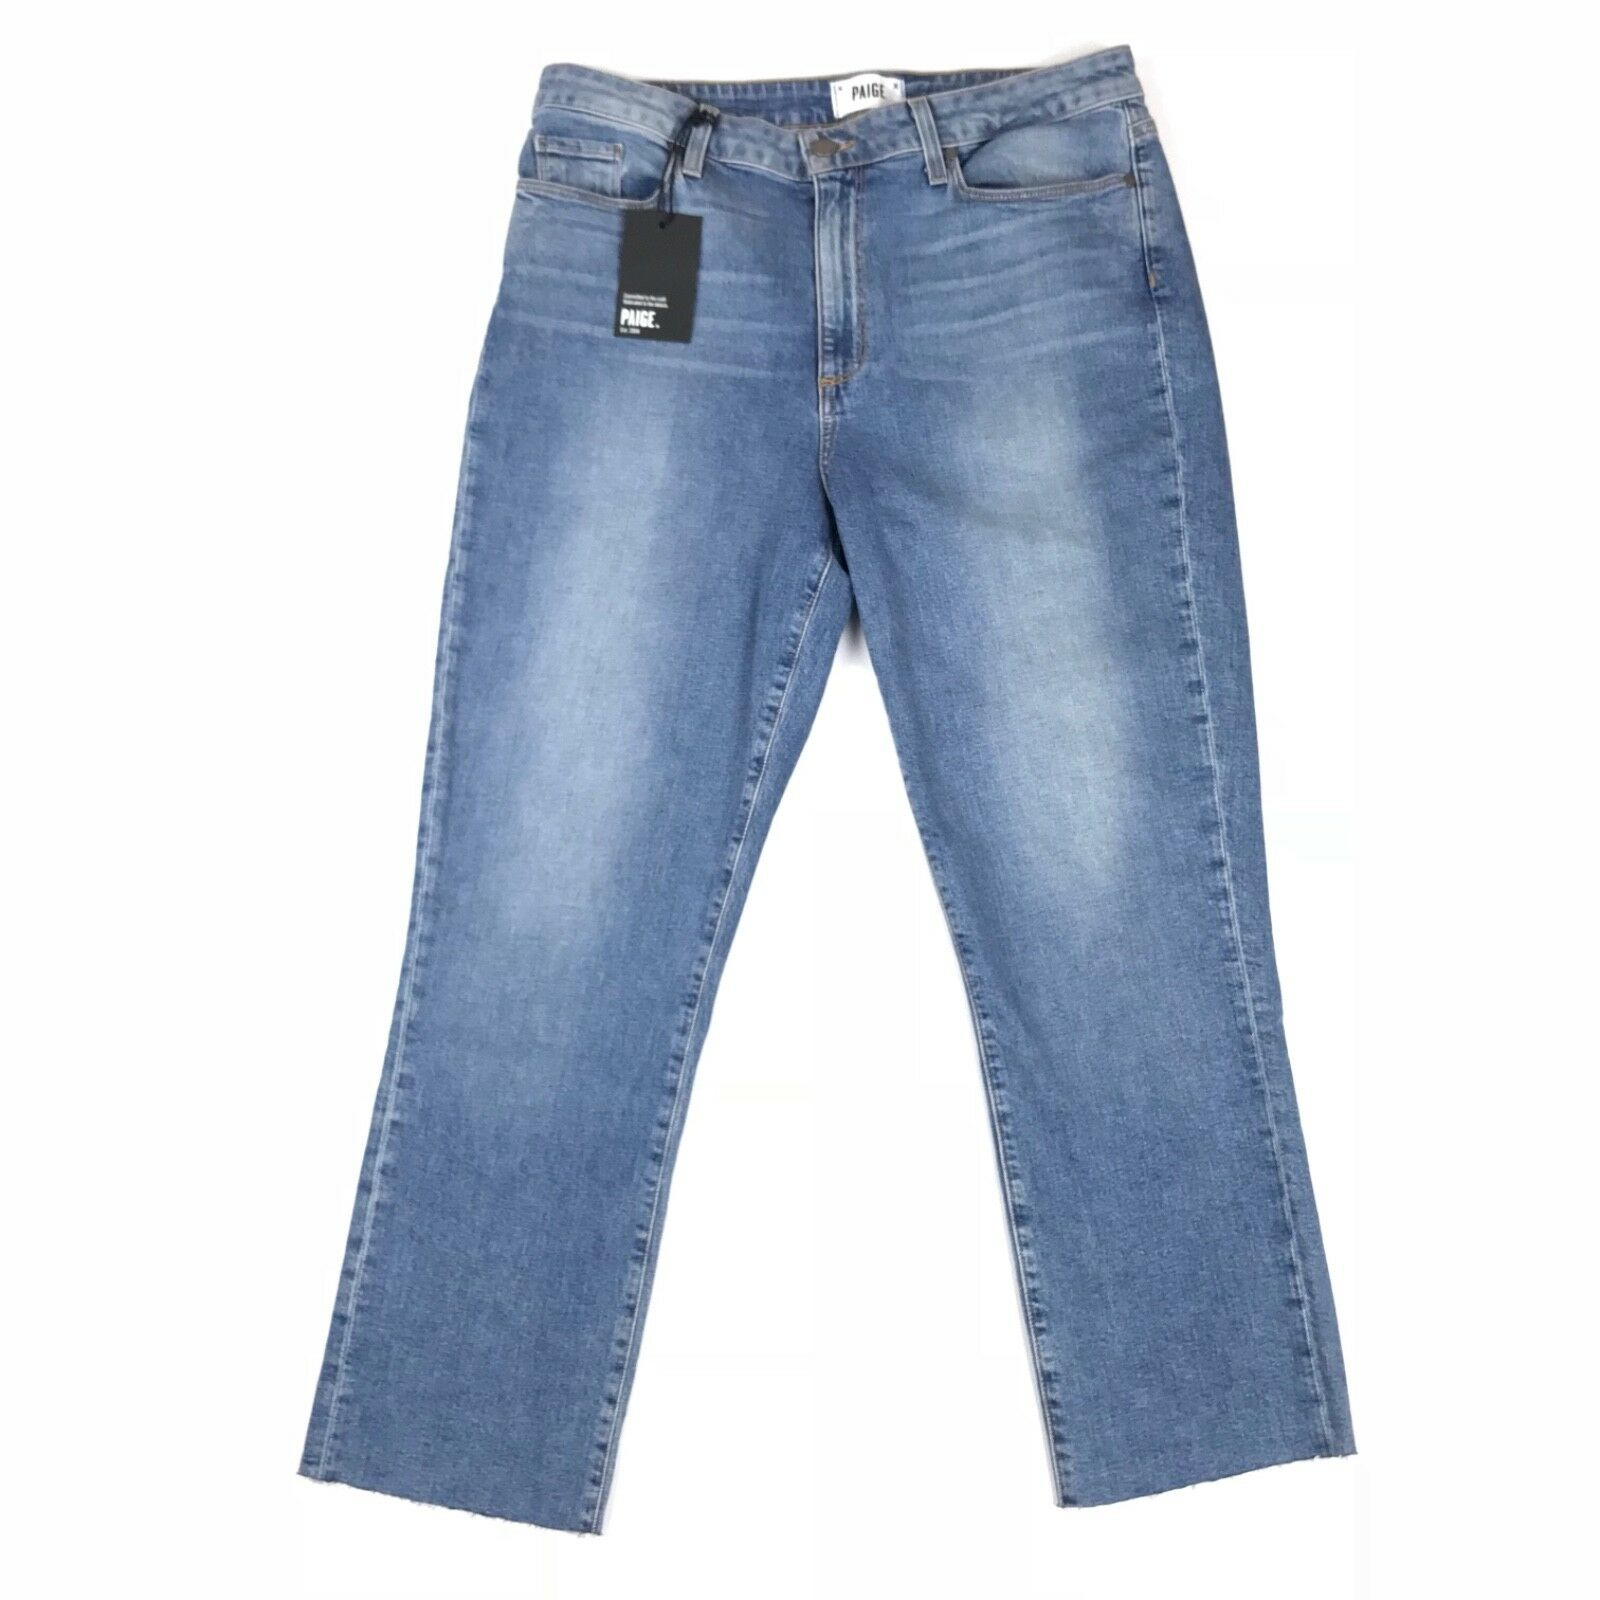 Paige mujer JEANS Jacqueline Recto High-Rise High-Rise High-Rise cultivo Bex Raw Dobladillo Talla 32x26 EE. UU. a57814